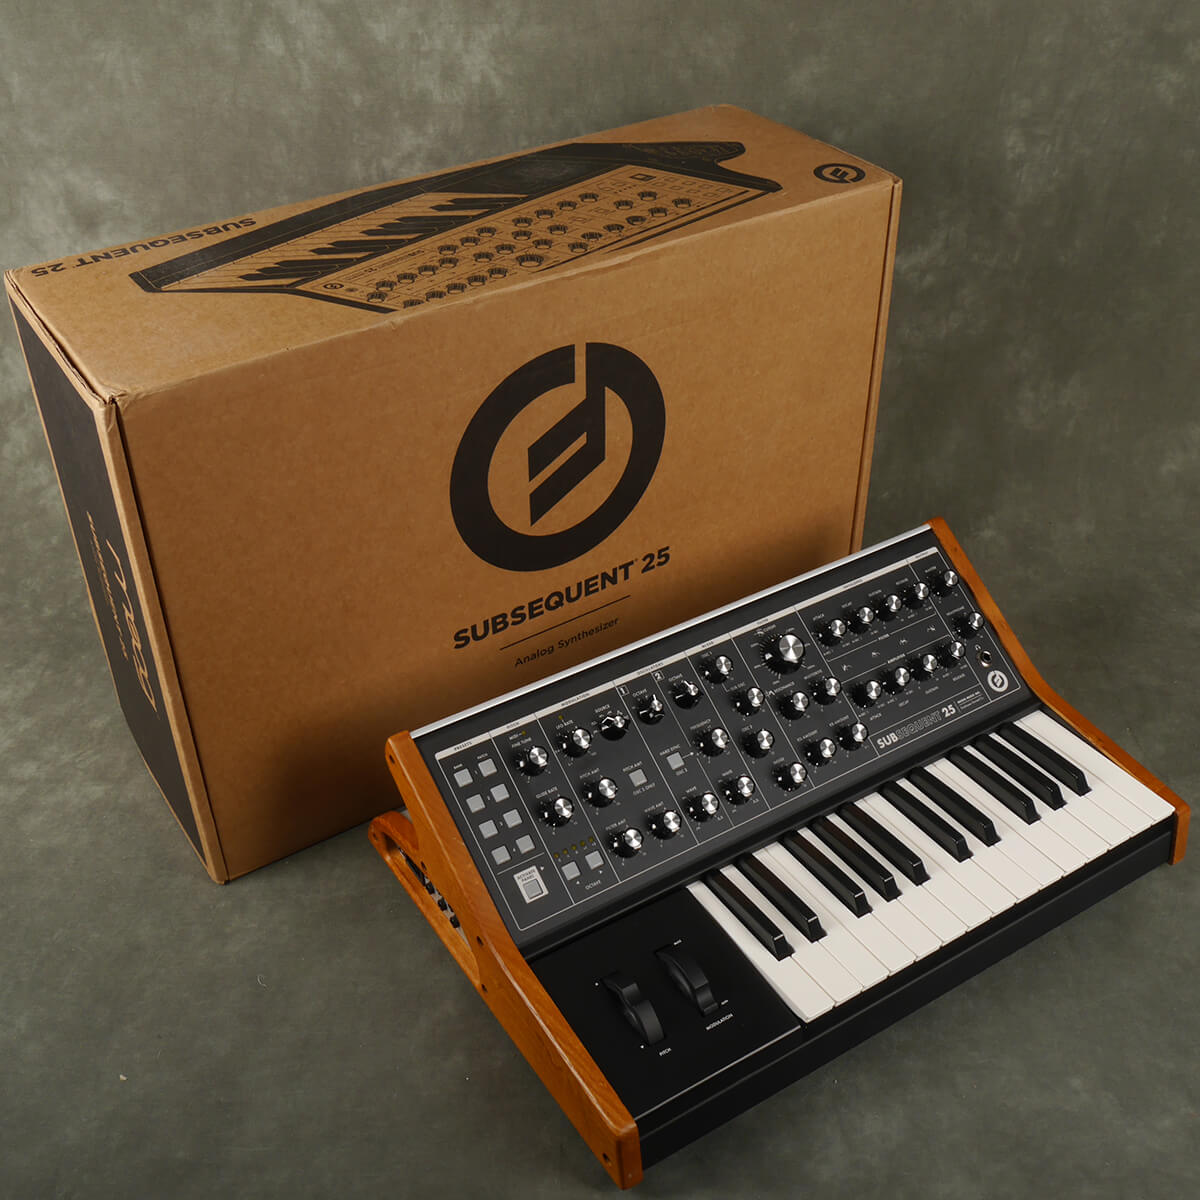 Moog Subsequent 25 Analogue Synthesizer w/Box & PSU - 2nd Hand